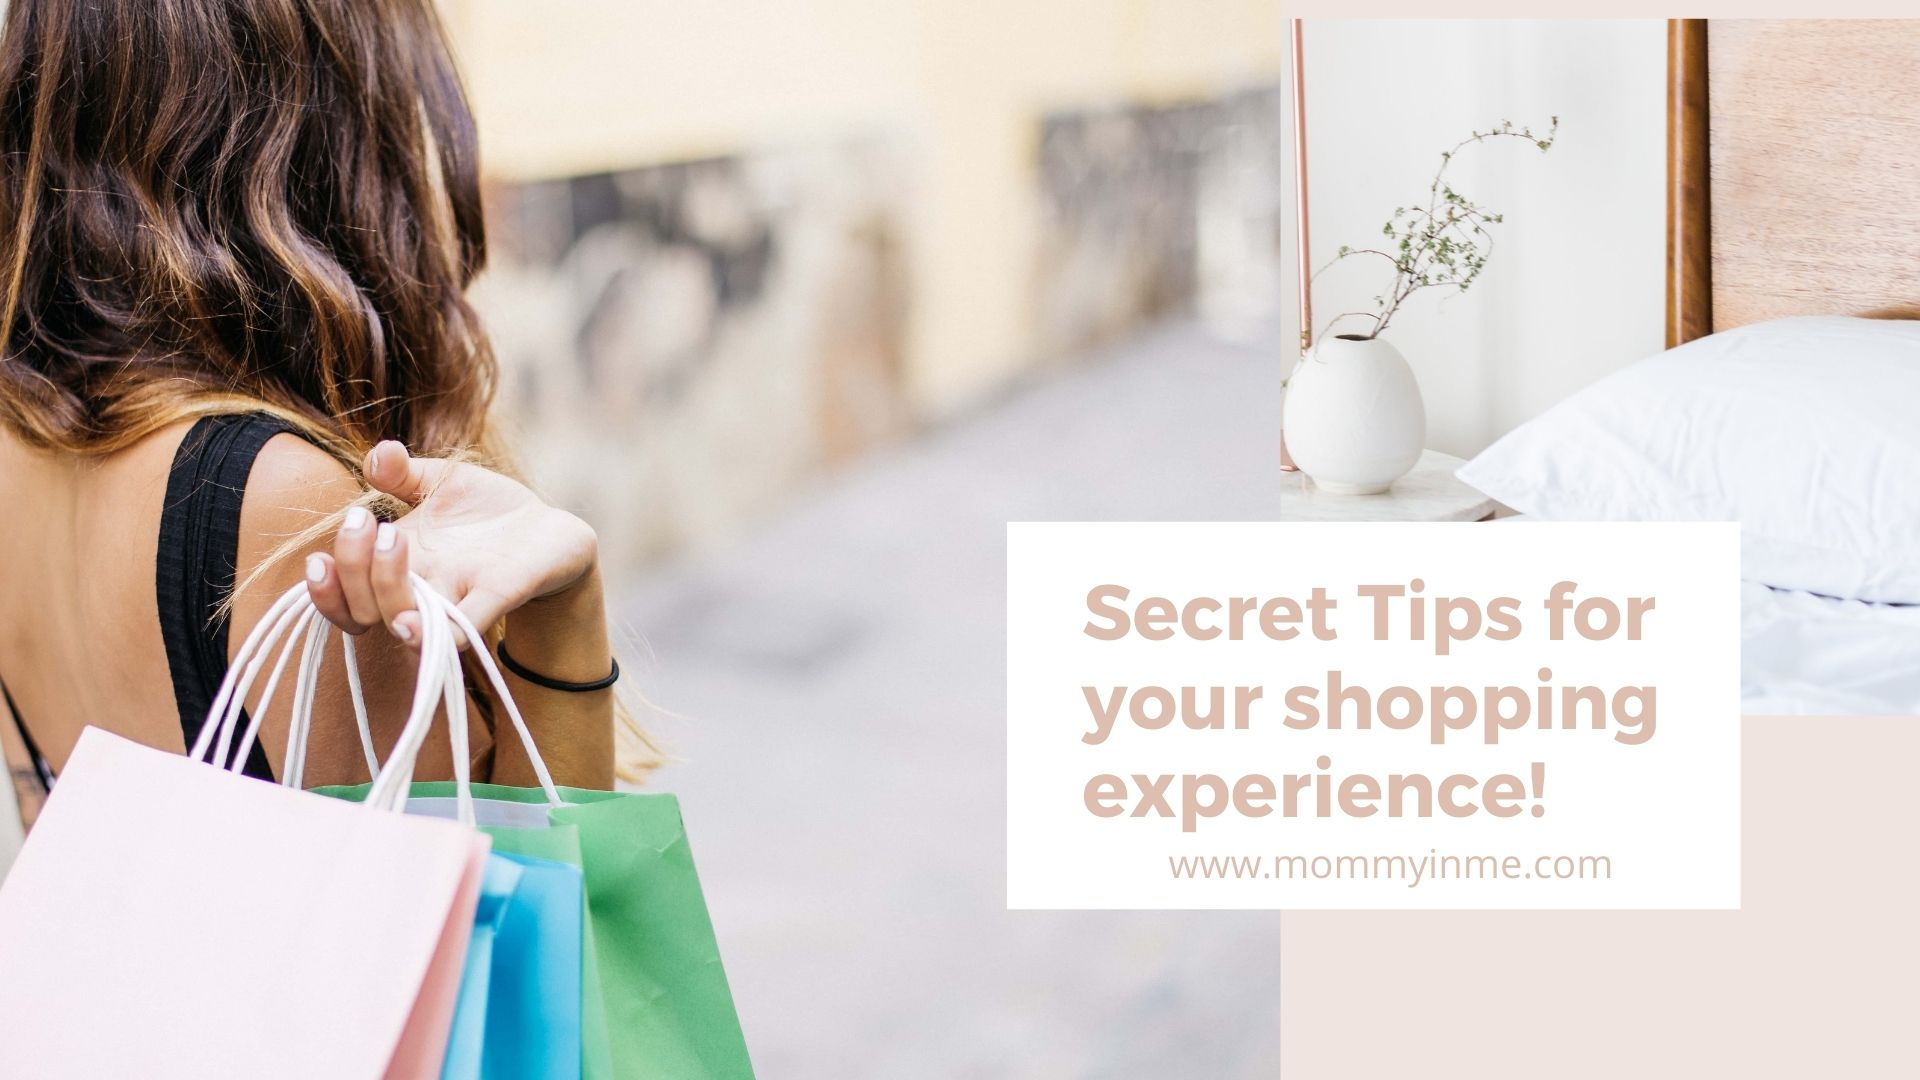 7 Secrets Tricks to Enjoy Your Shopping Mall Experience